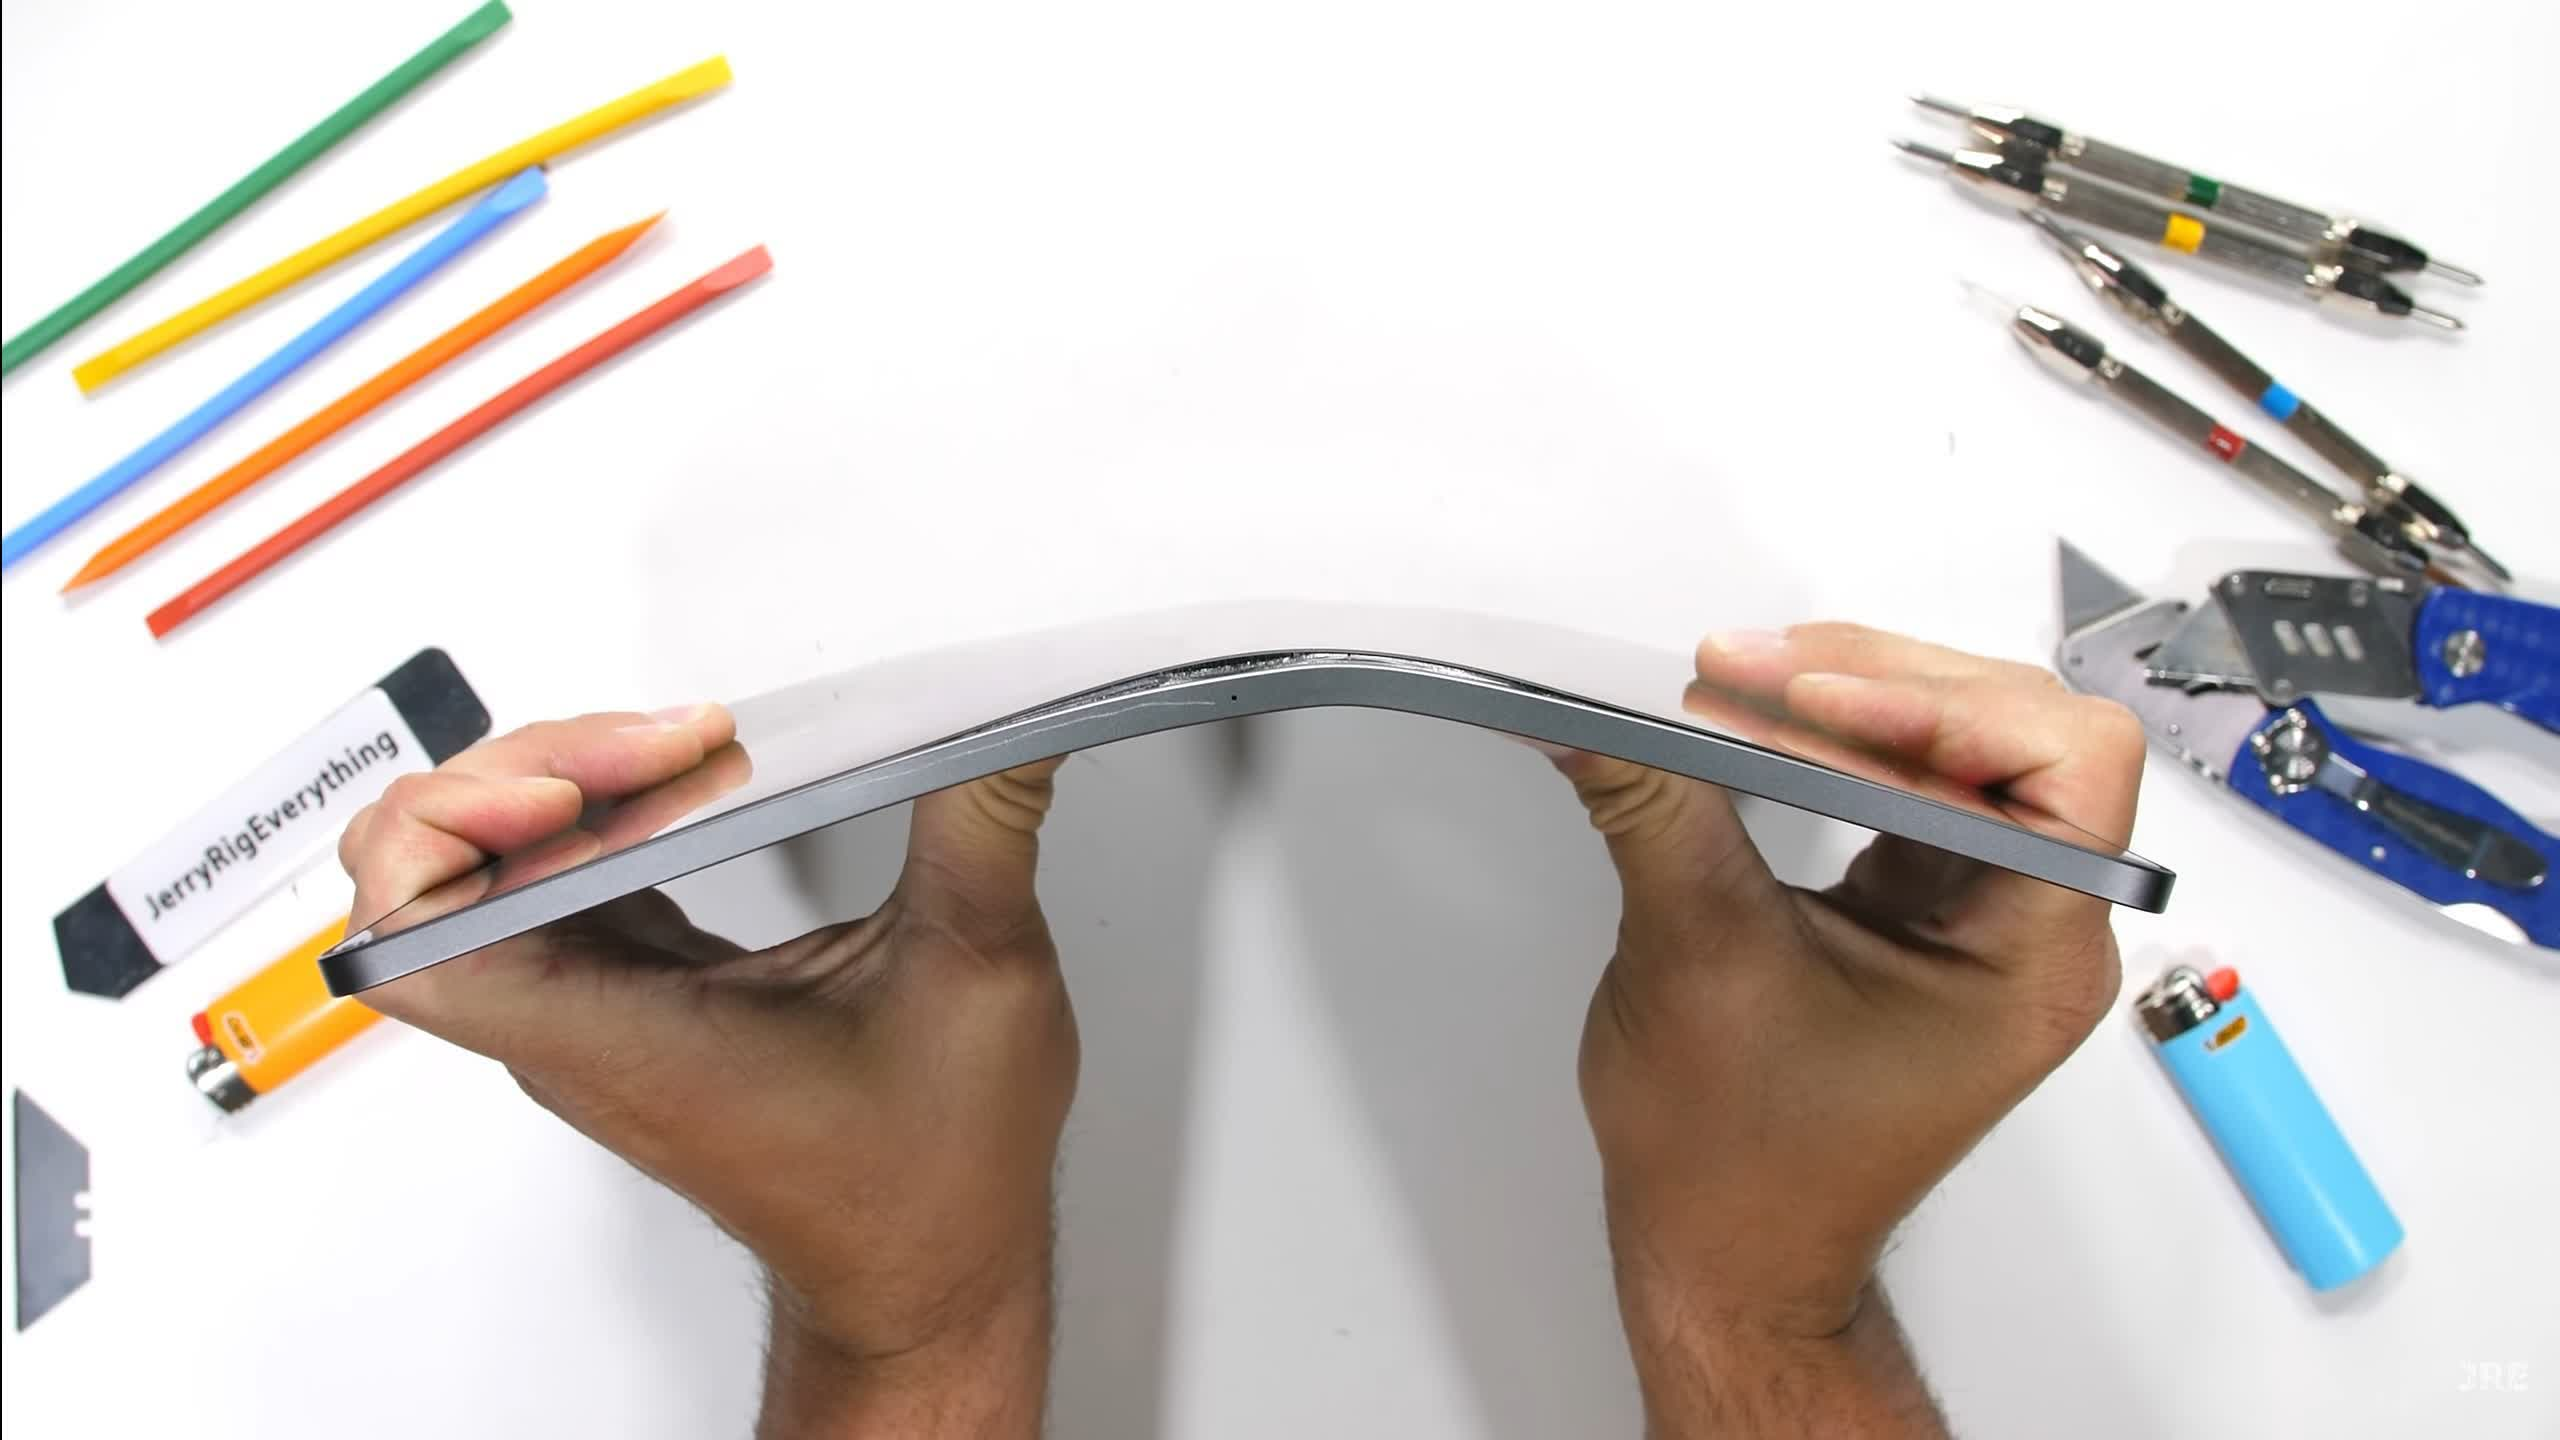 Apple's M1-powered iPad Pro handles burns, scratches, and bends quite well